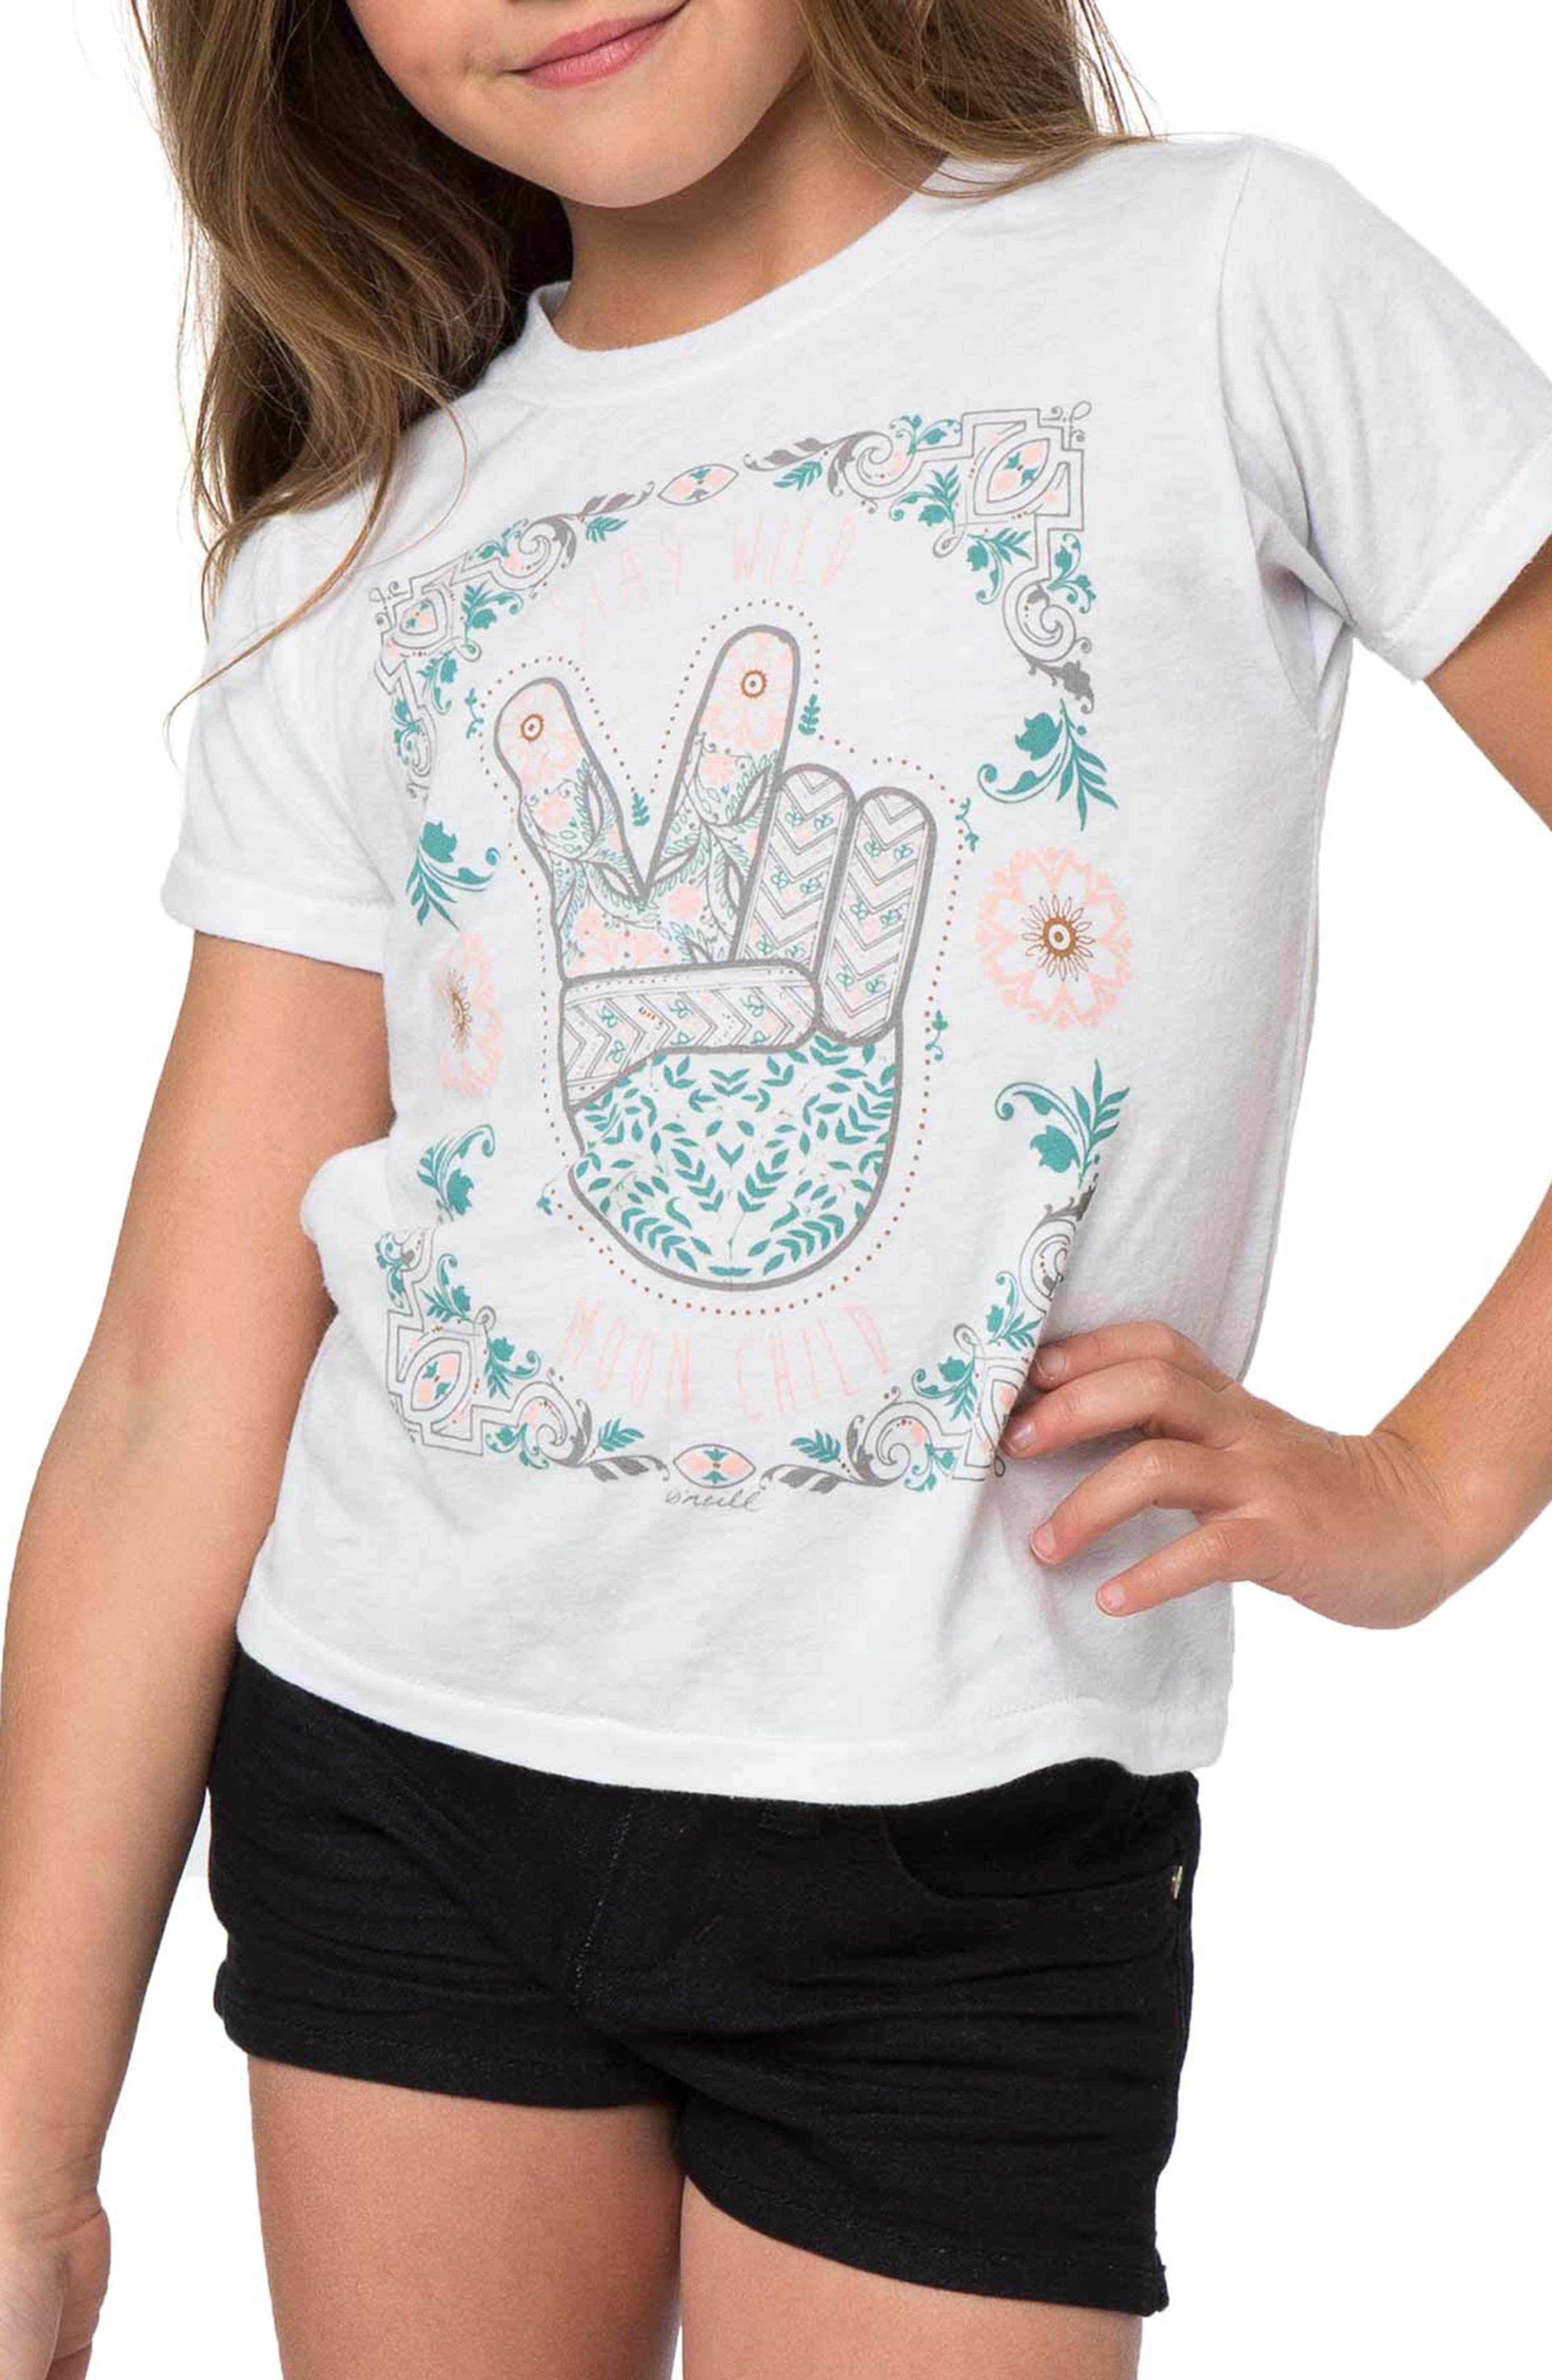 Stay Wild Moon Child Graphic Print Tee,                         Main,                         color, White